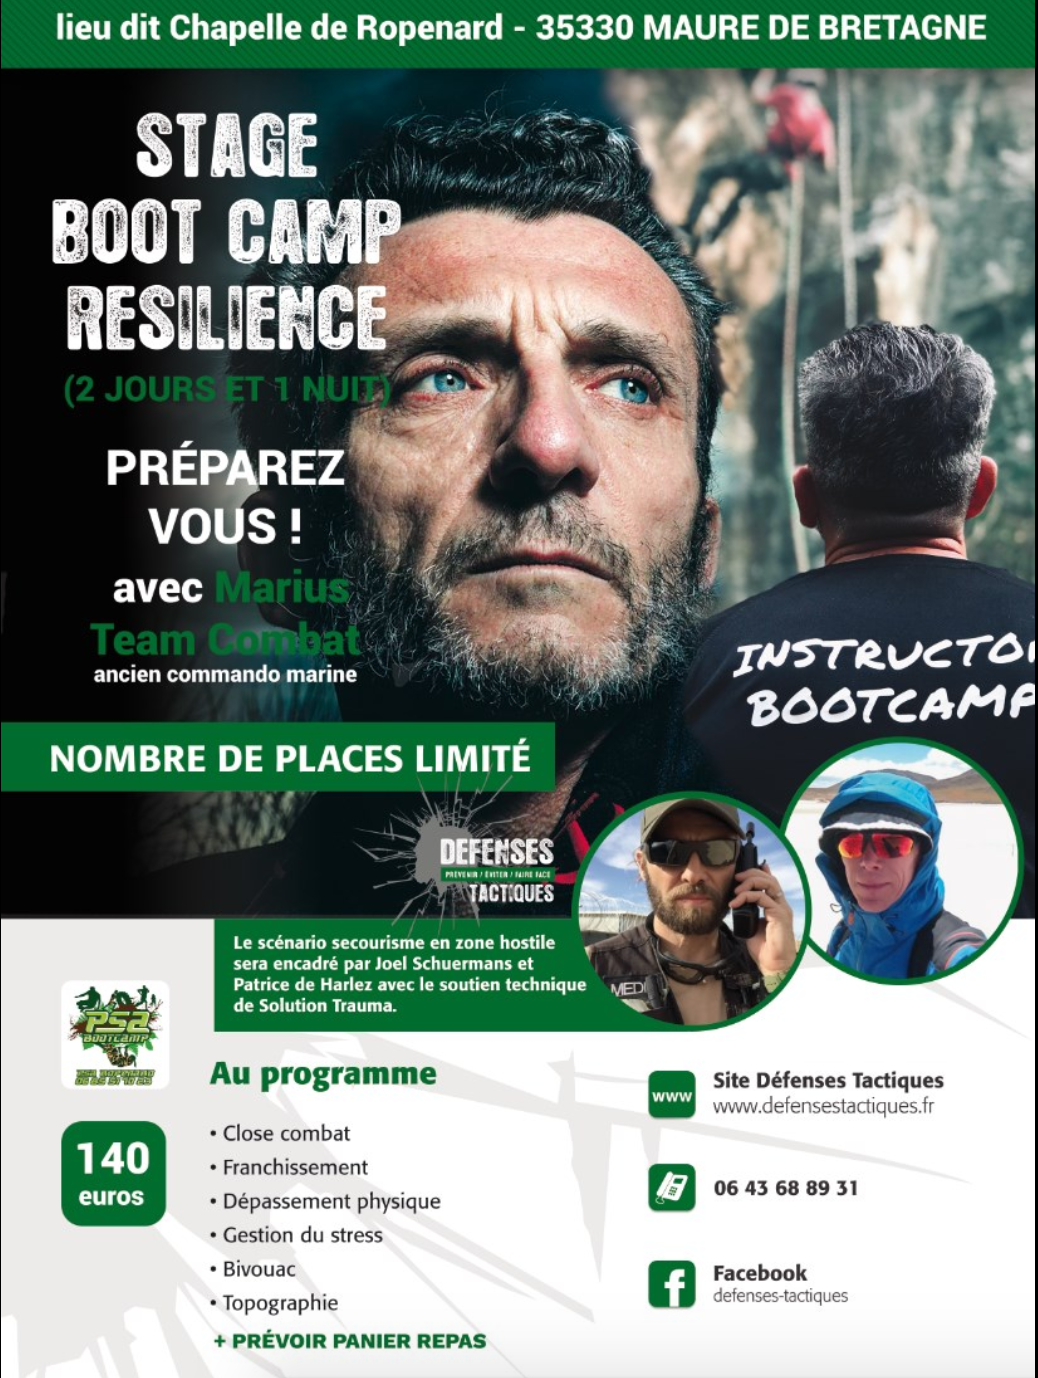 STAGE BOOTCAMP RESILIENCE ! INEDIT AVEC MARIUS ET CELOPS